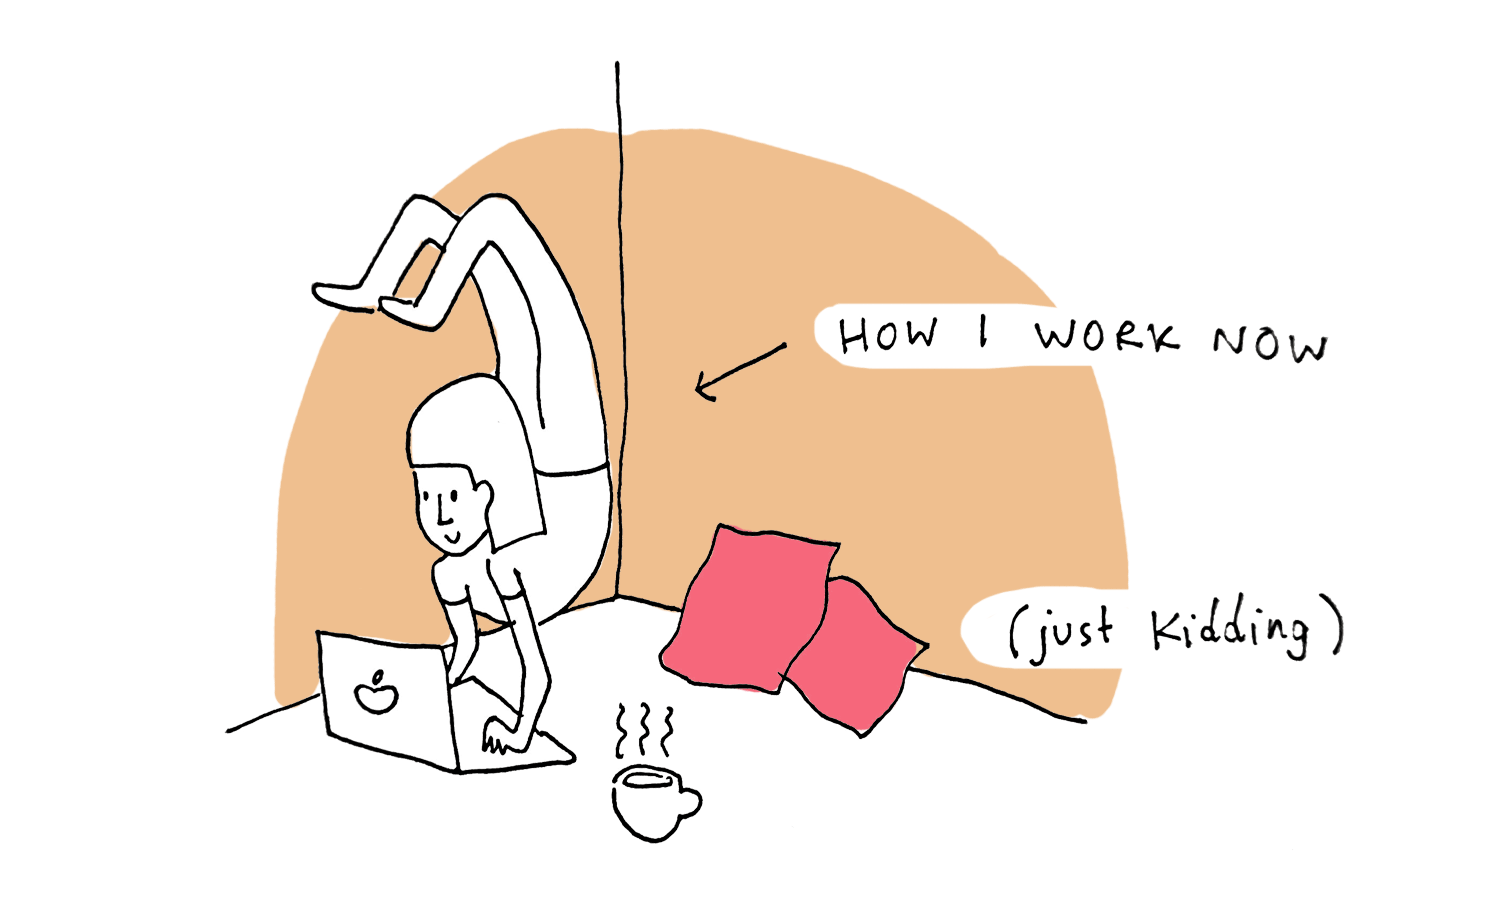 An illustration of the author doing a hand stand on her laptop keyboard.